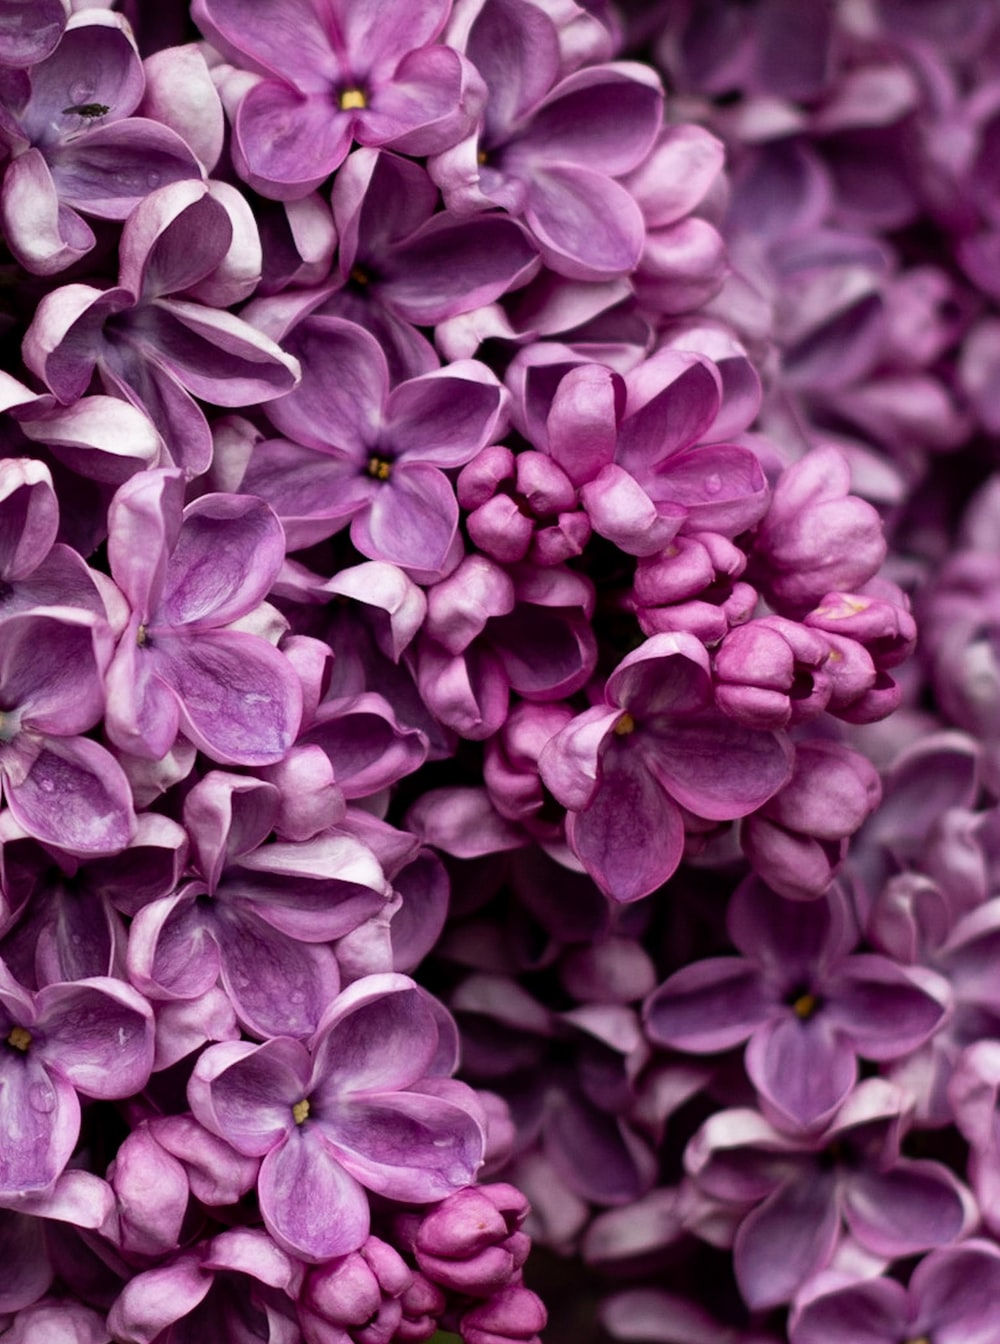 macro photography of purple flower